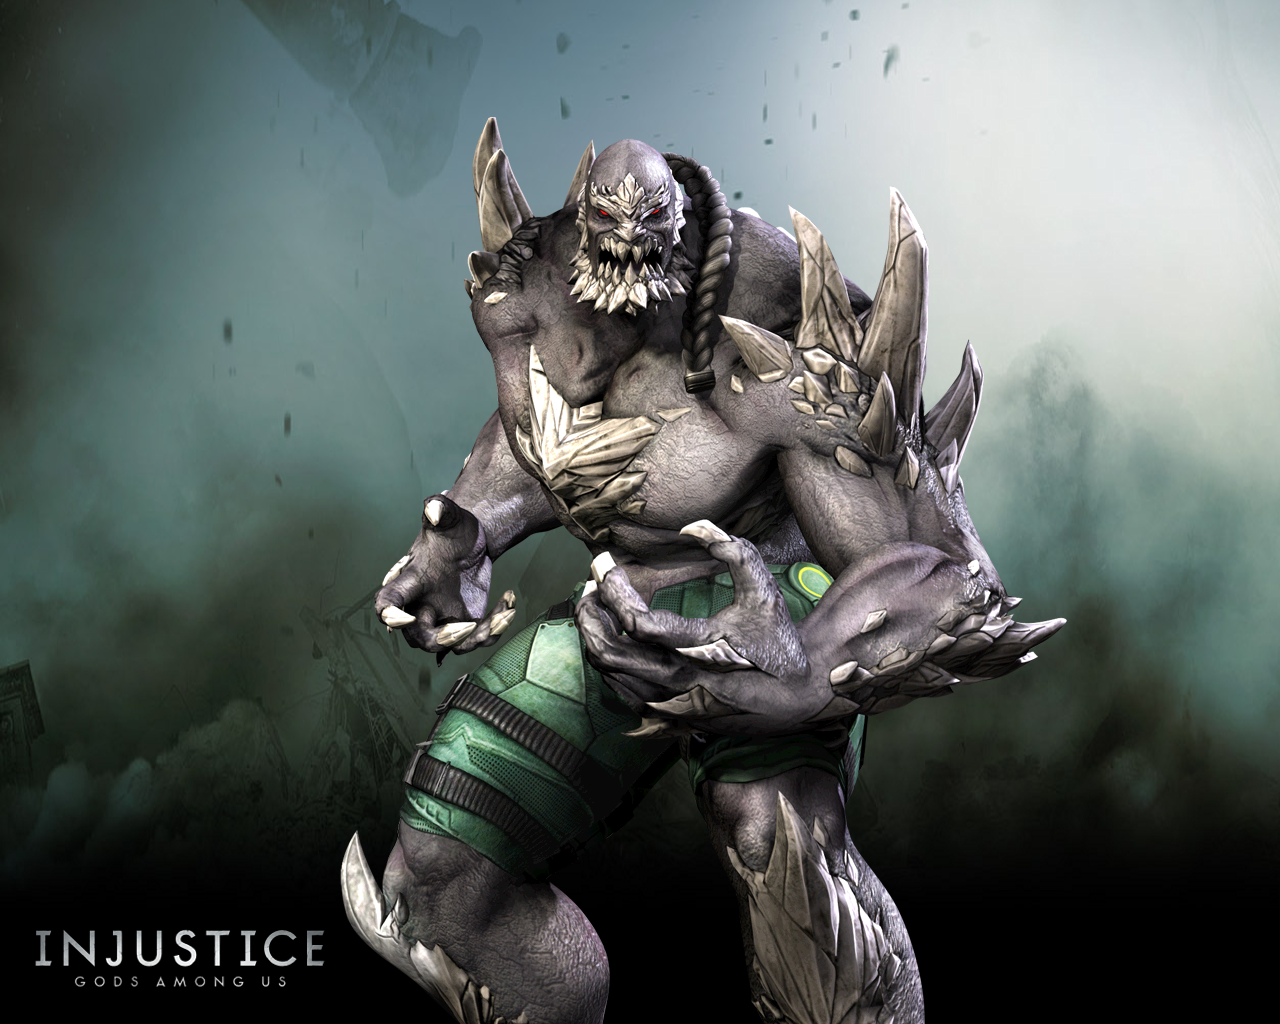 Injustice Gods Among Us Wallpaper 1280x1024